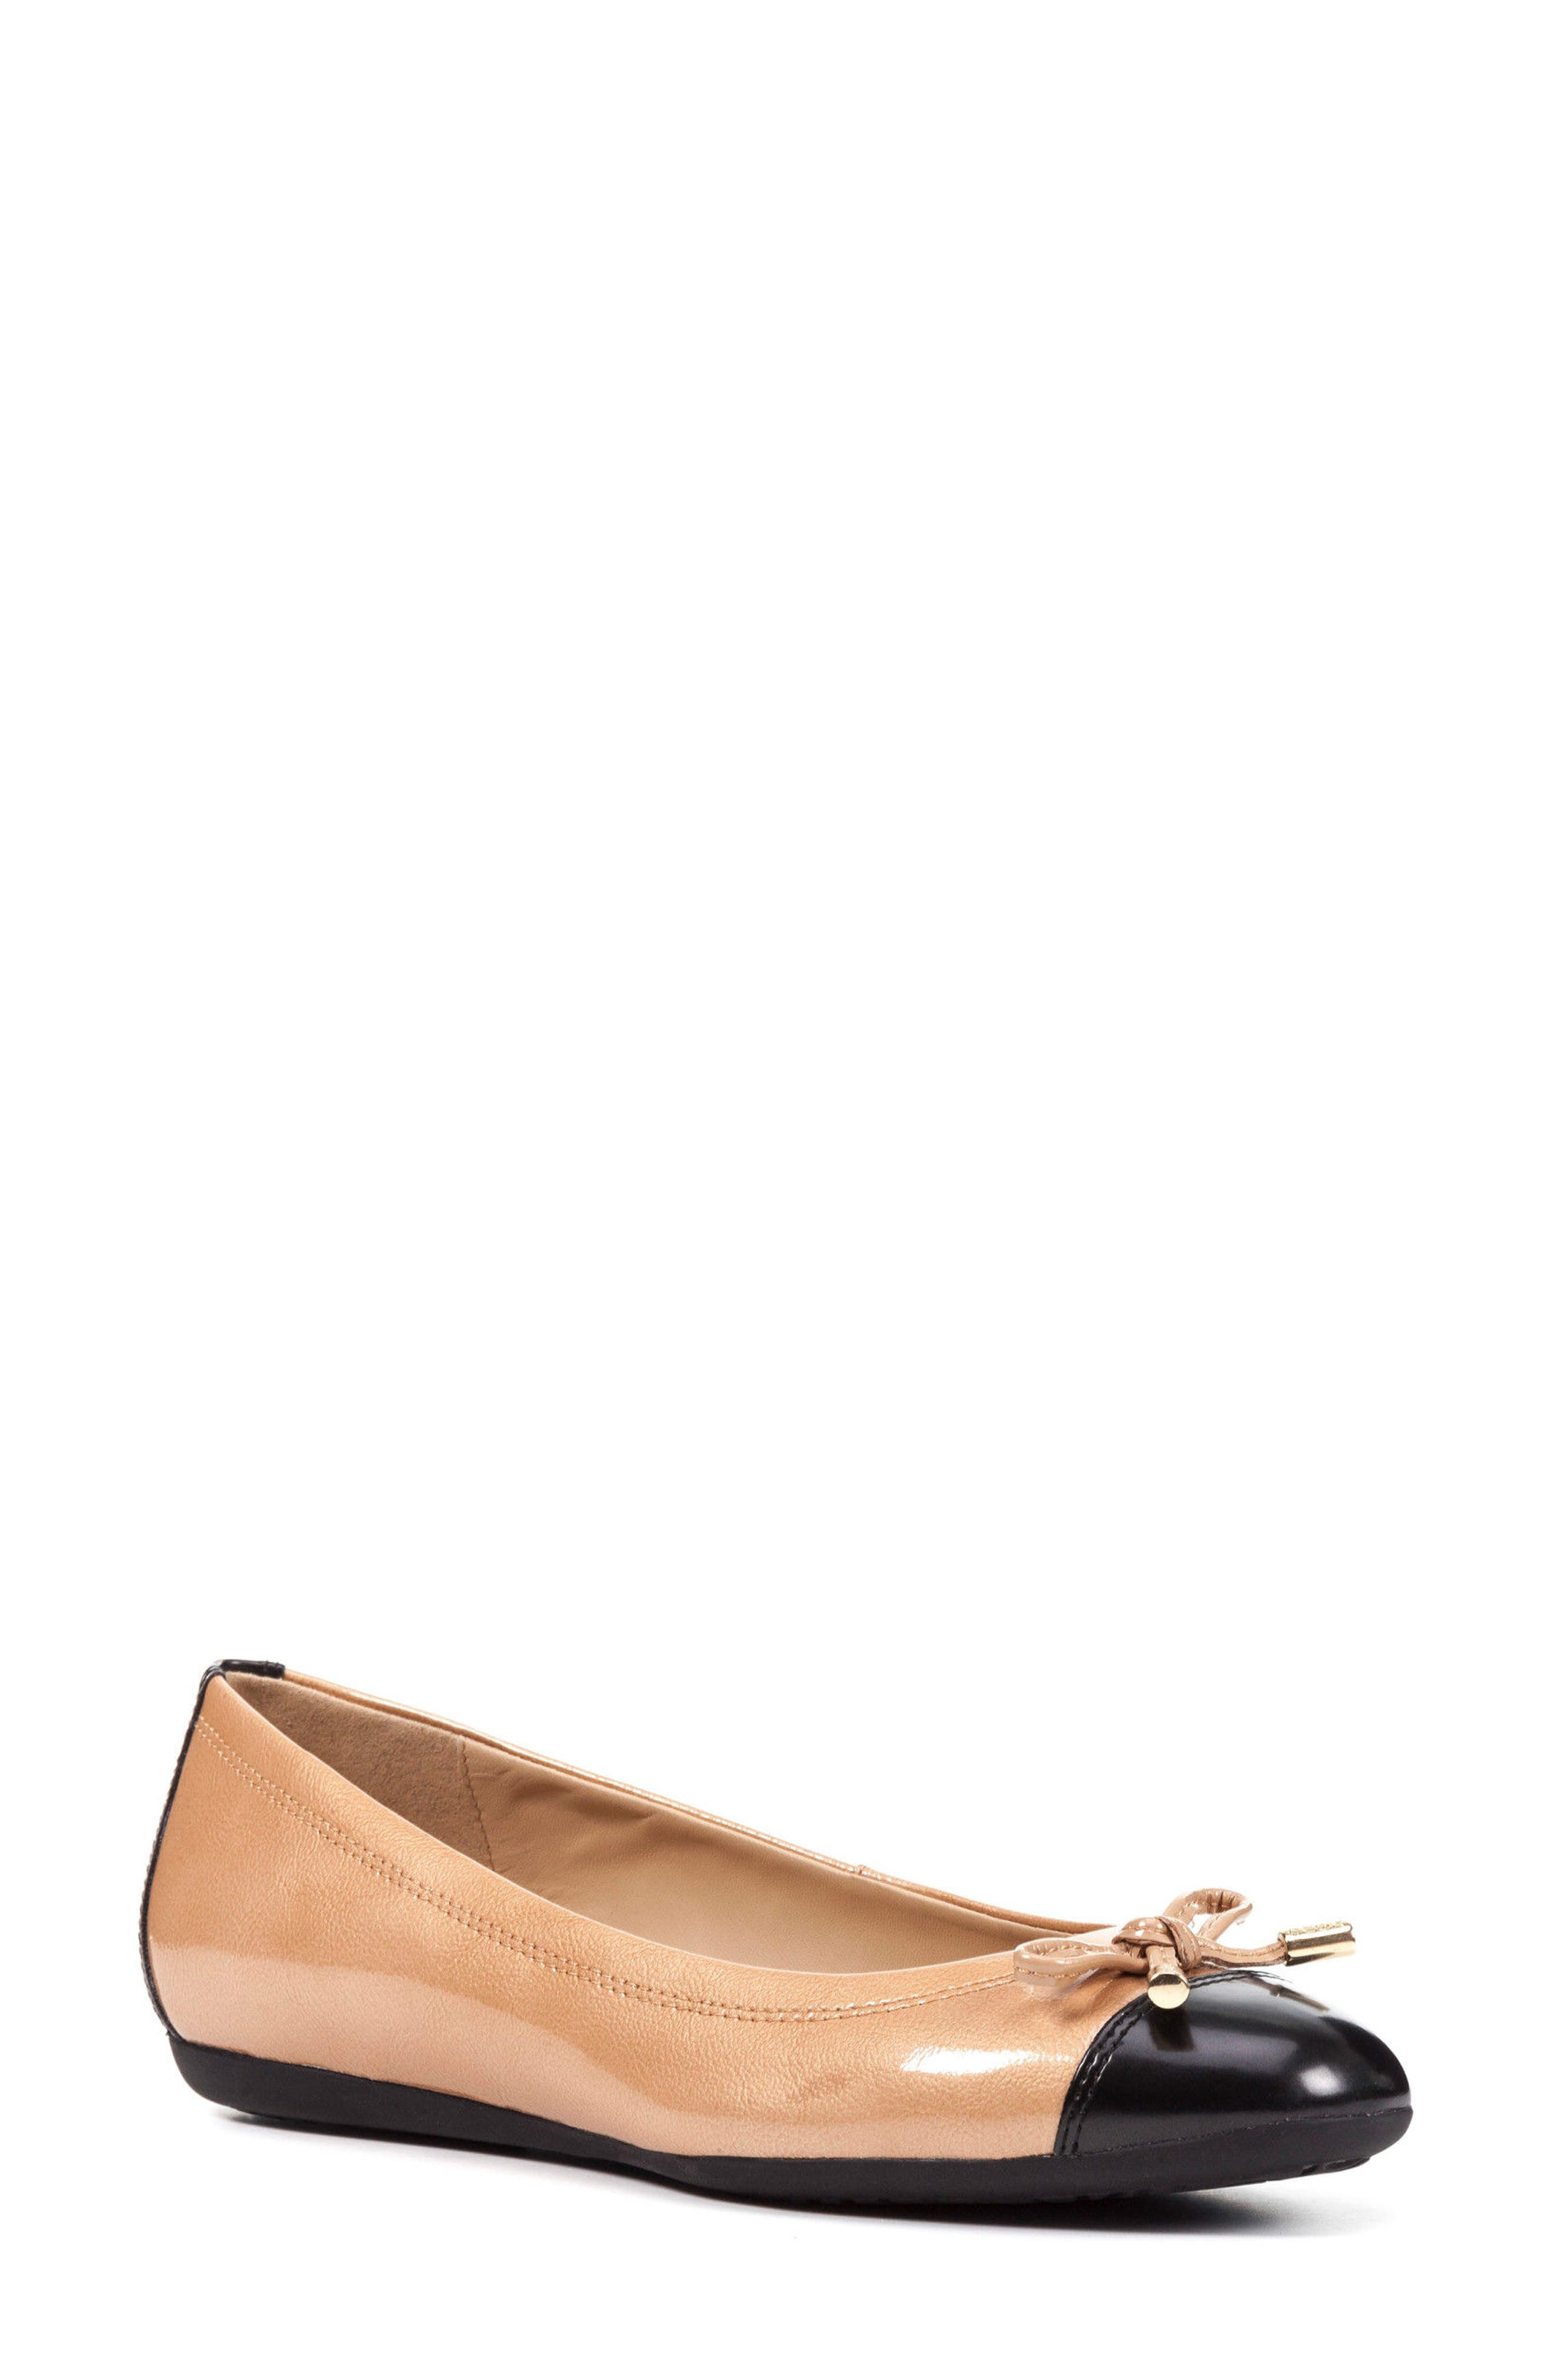 Lola Water Resistant Flat,                         Main,                         color, Camel Leather